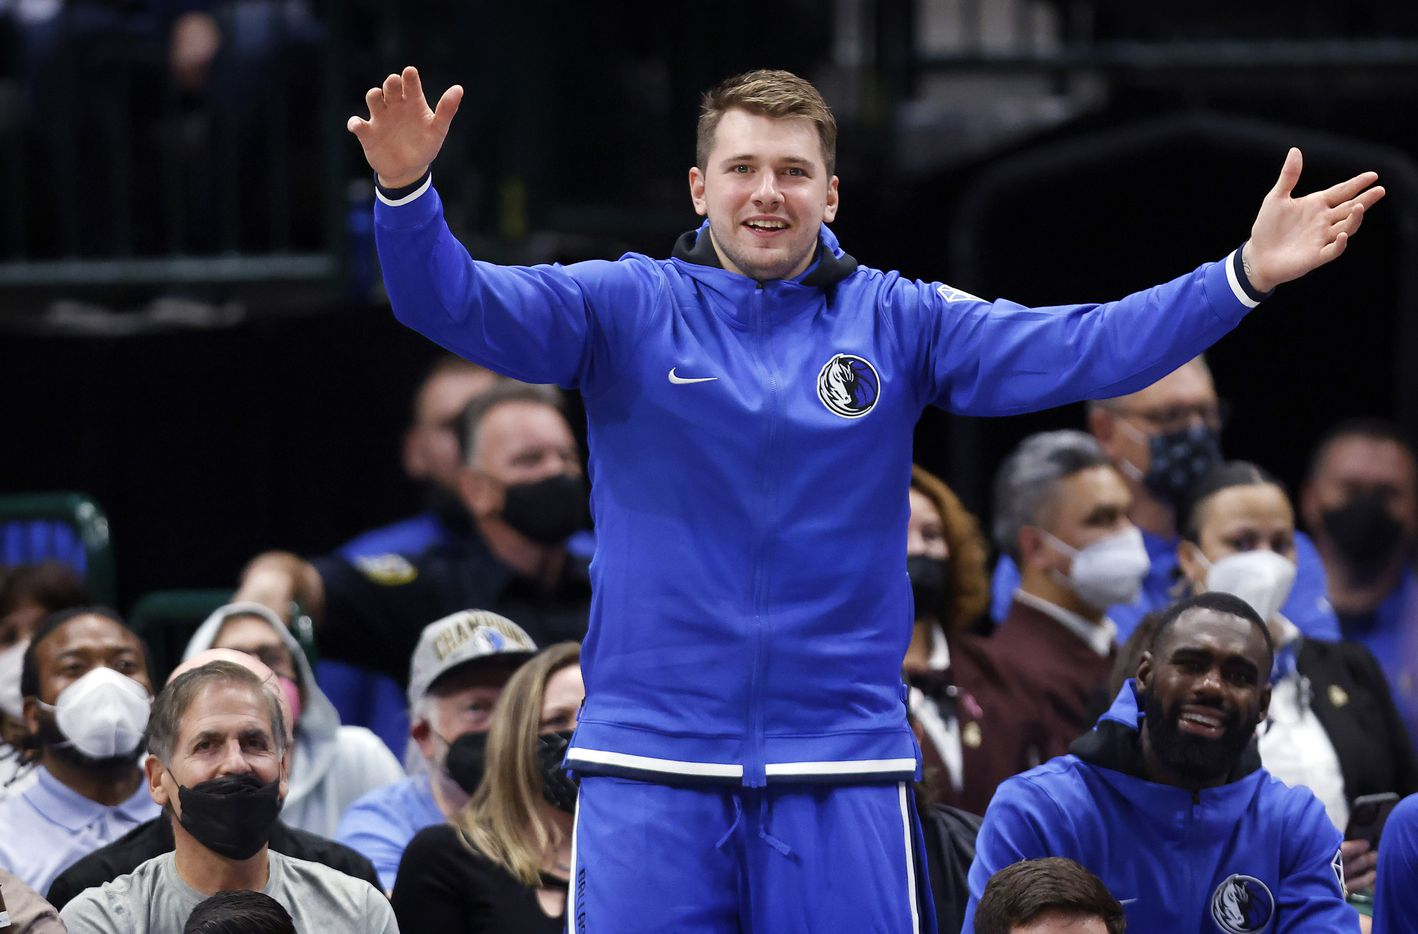 Dallas Mavericks guard Luka Doncic jumps out of his seat to celebrate a second half score against the Utah Jazz at the American Airlines Center in Dallas, Wednesday, October 6, 2021. The Mavericks defeated the Jazz, 111-101. (Tom Fox/The Dallas Morning News)